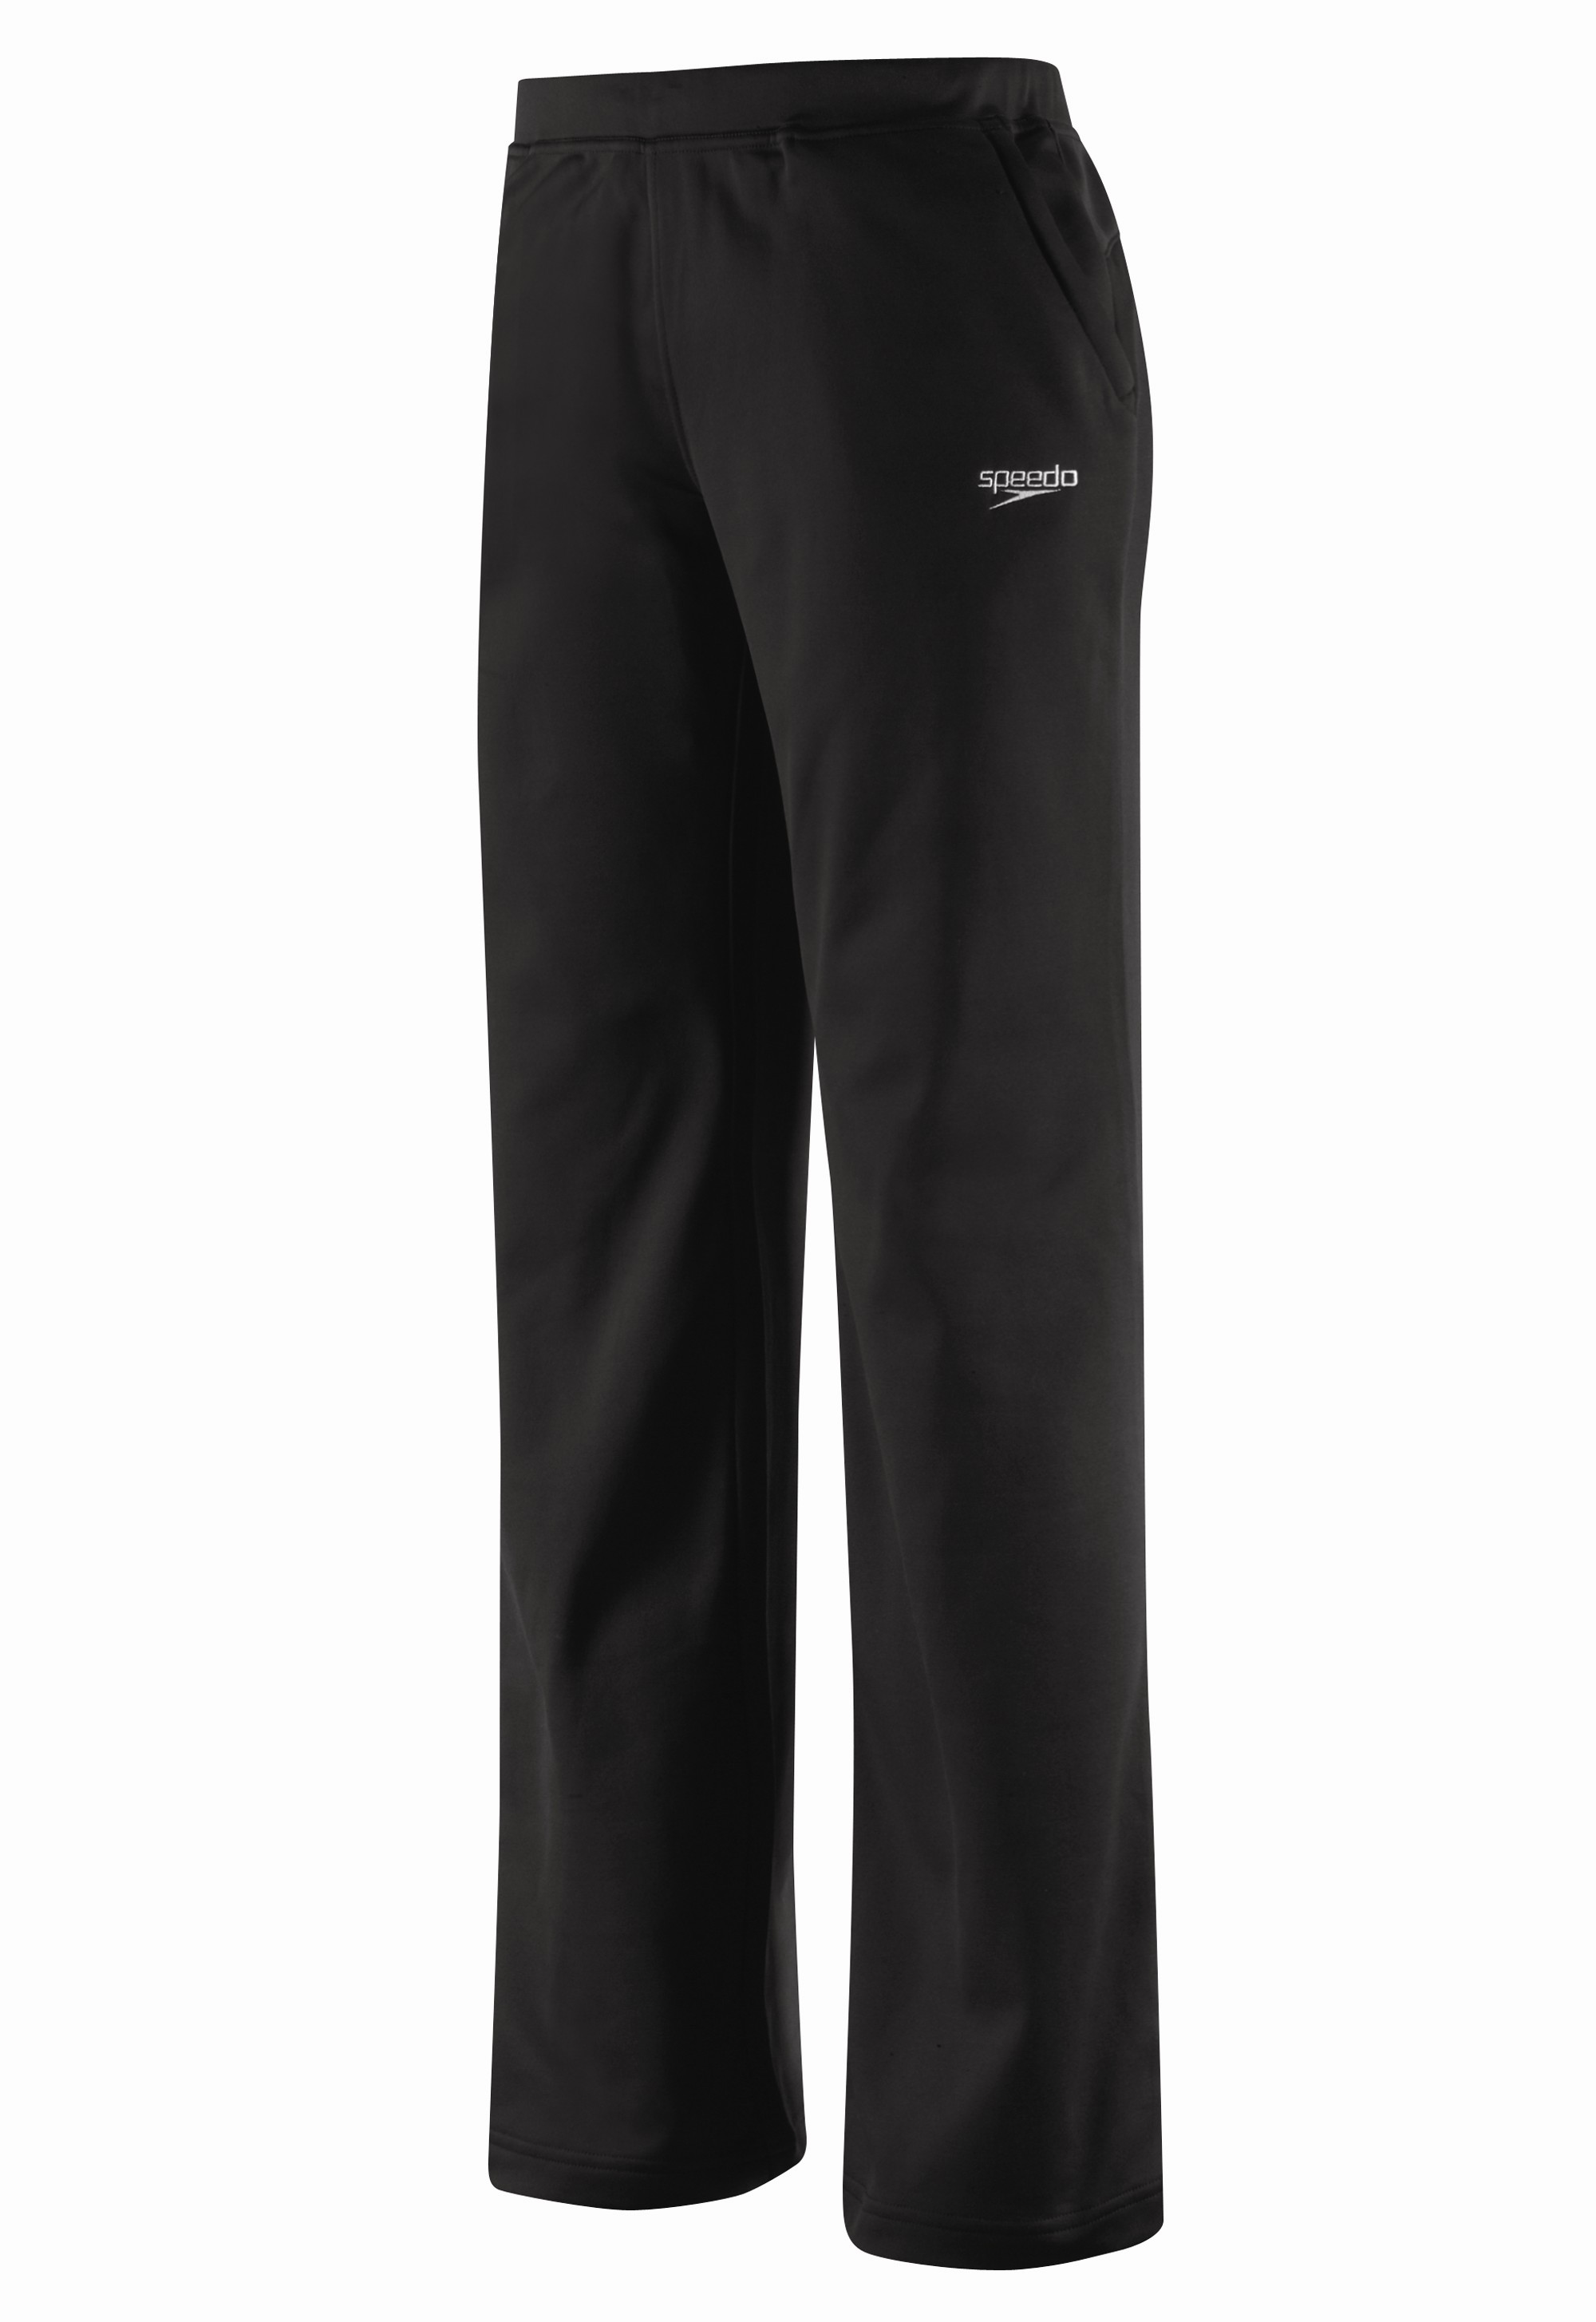 086035d9f7 SPEEDO Sonic Warm Up Female Pant - Metro Swim Shop